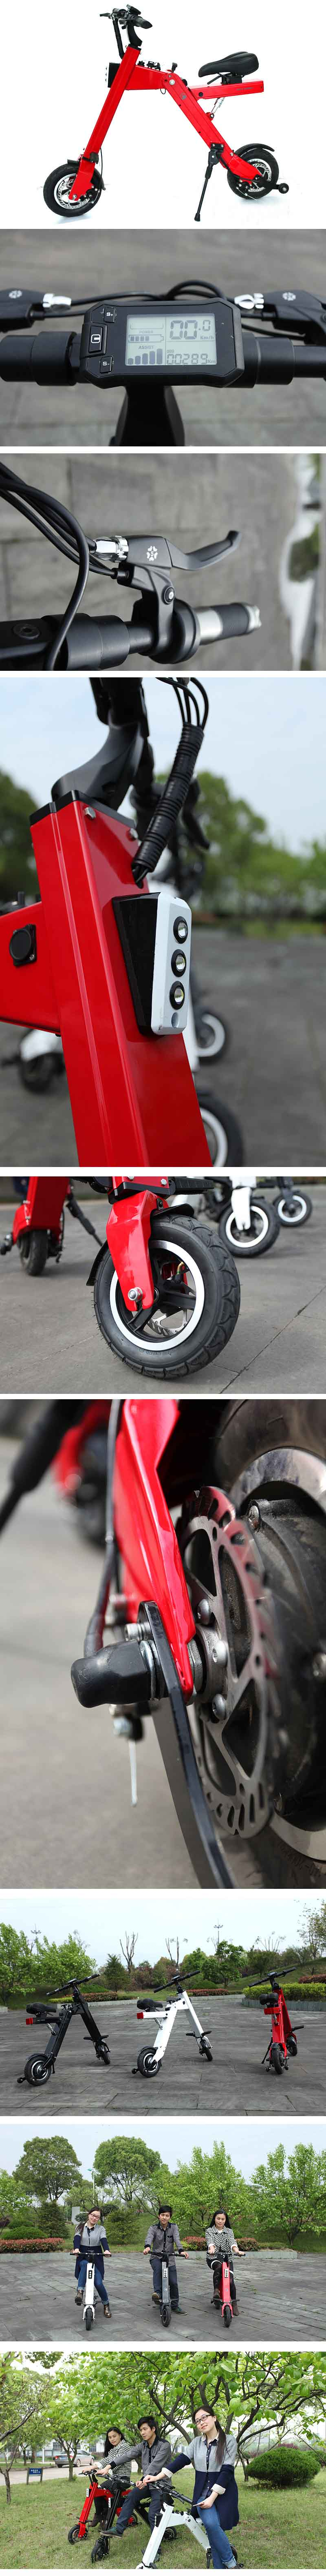 Red White Black Mini Foldable Scooter 250W